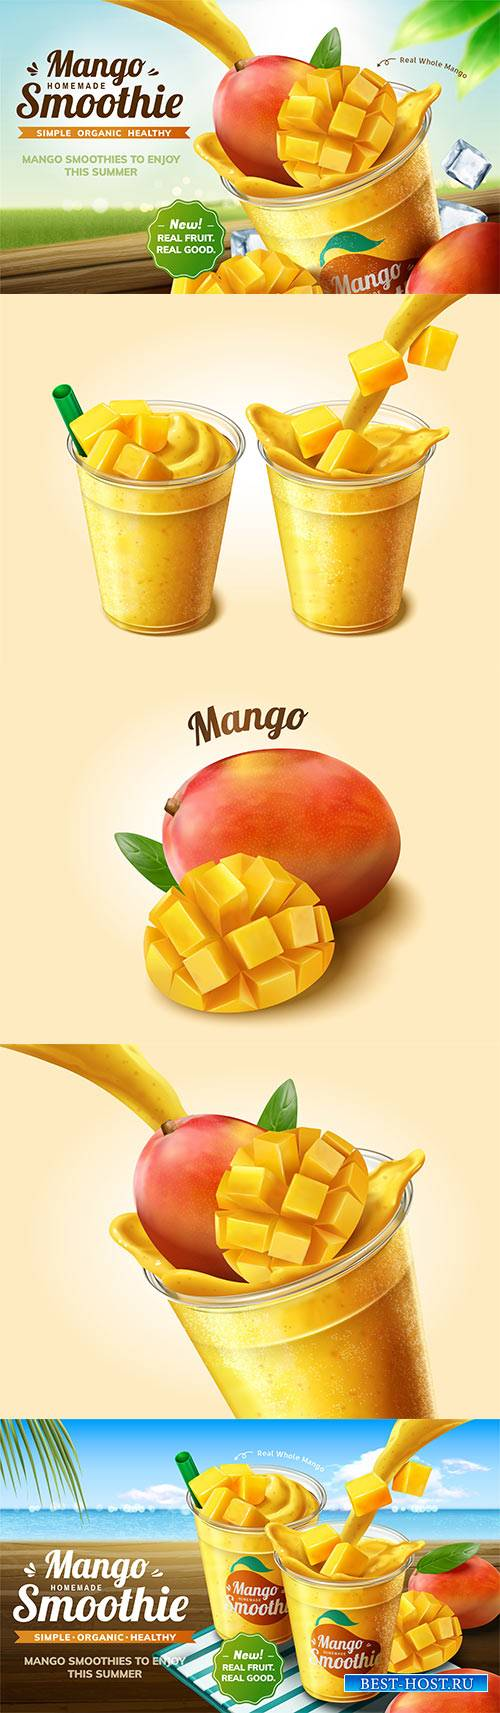 Summer mango smoothie ads, vector 3d illustration